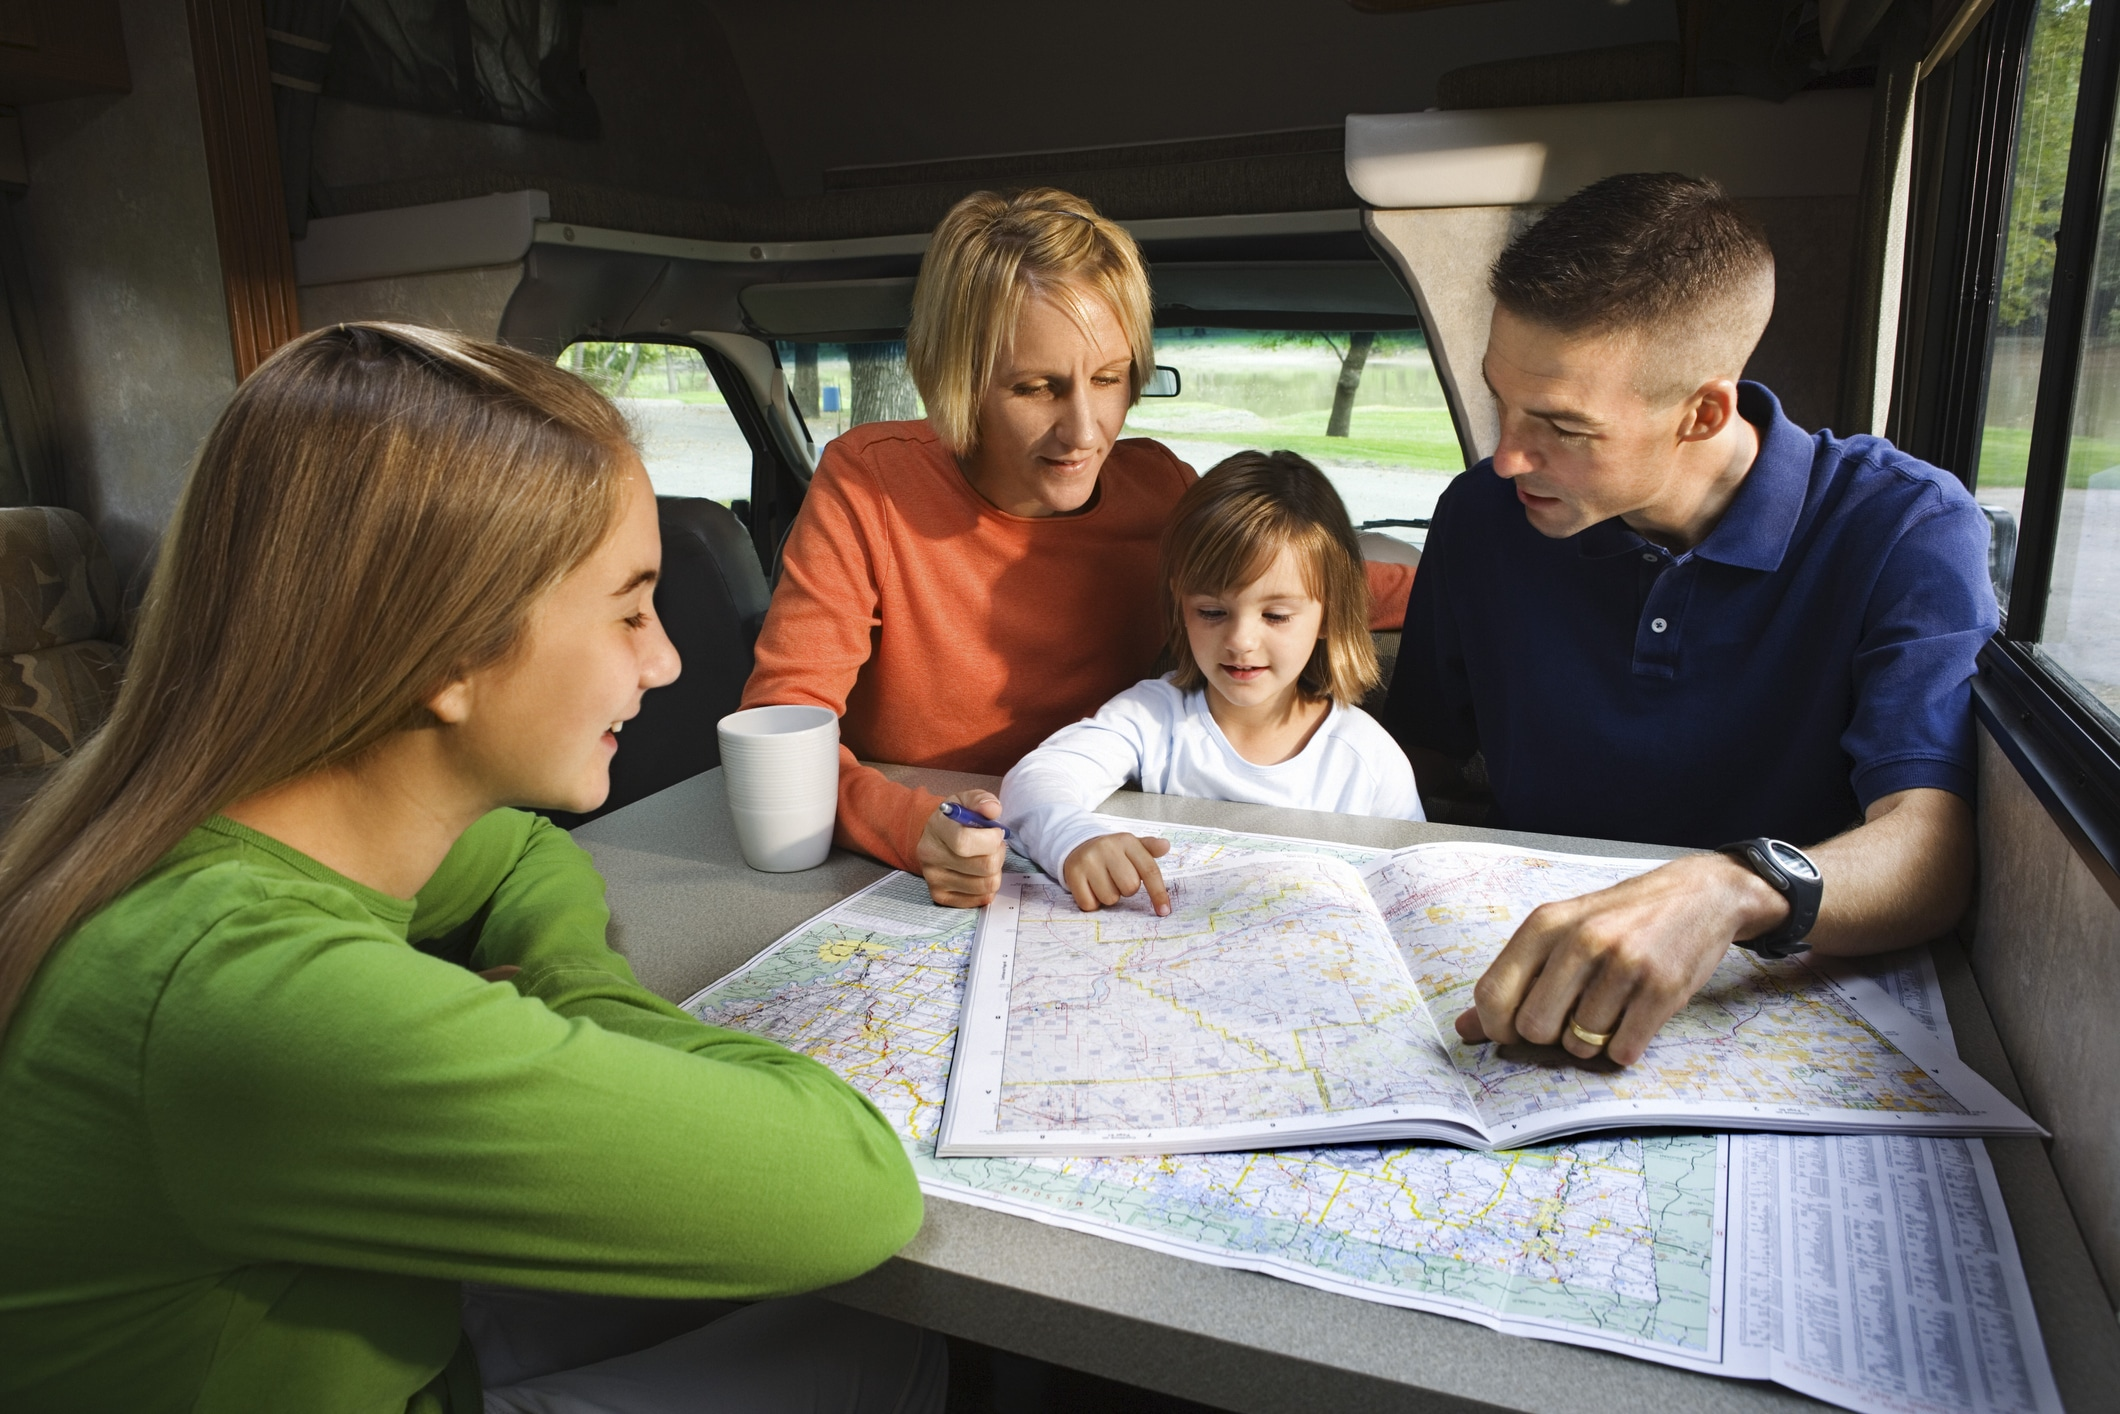 A family of four pours over a map in their RV.